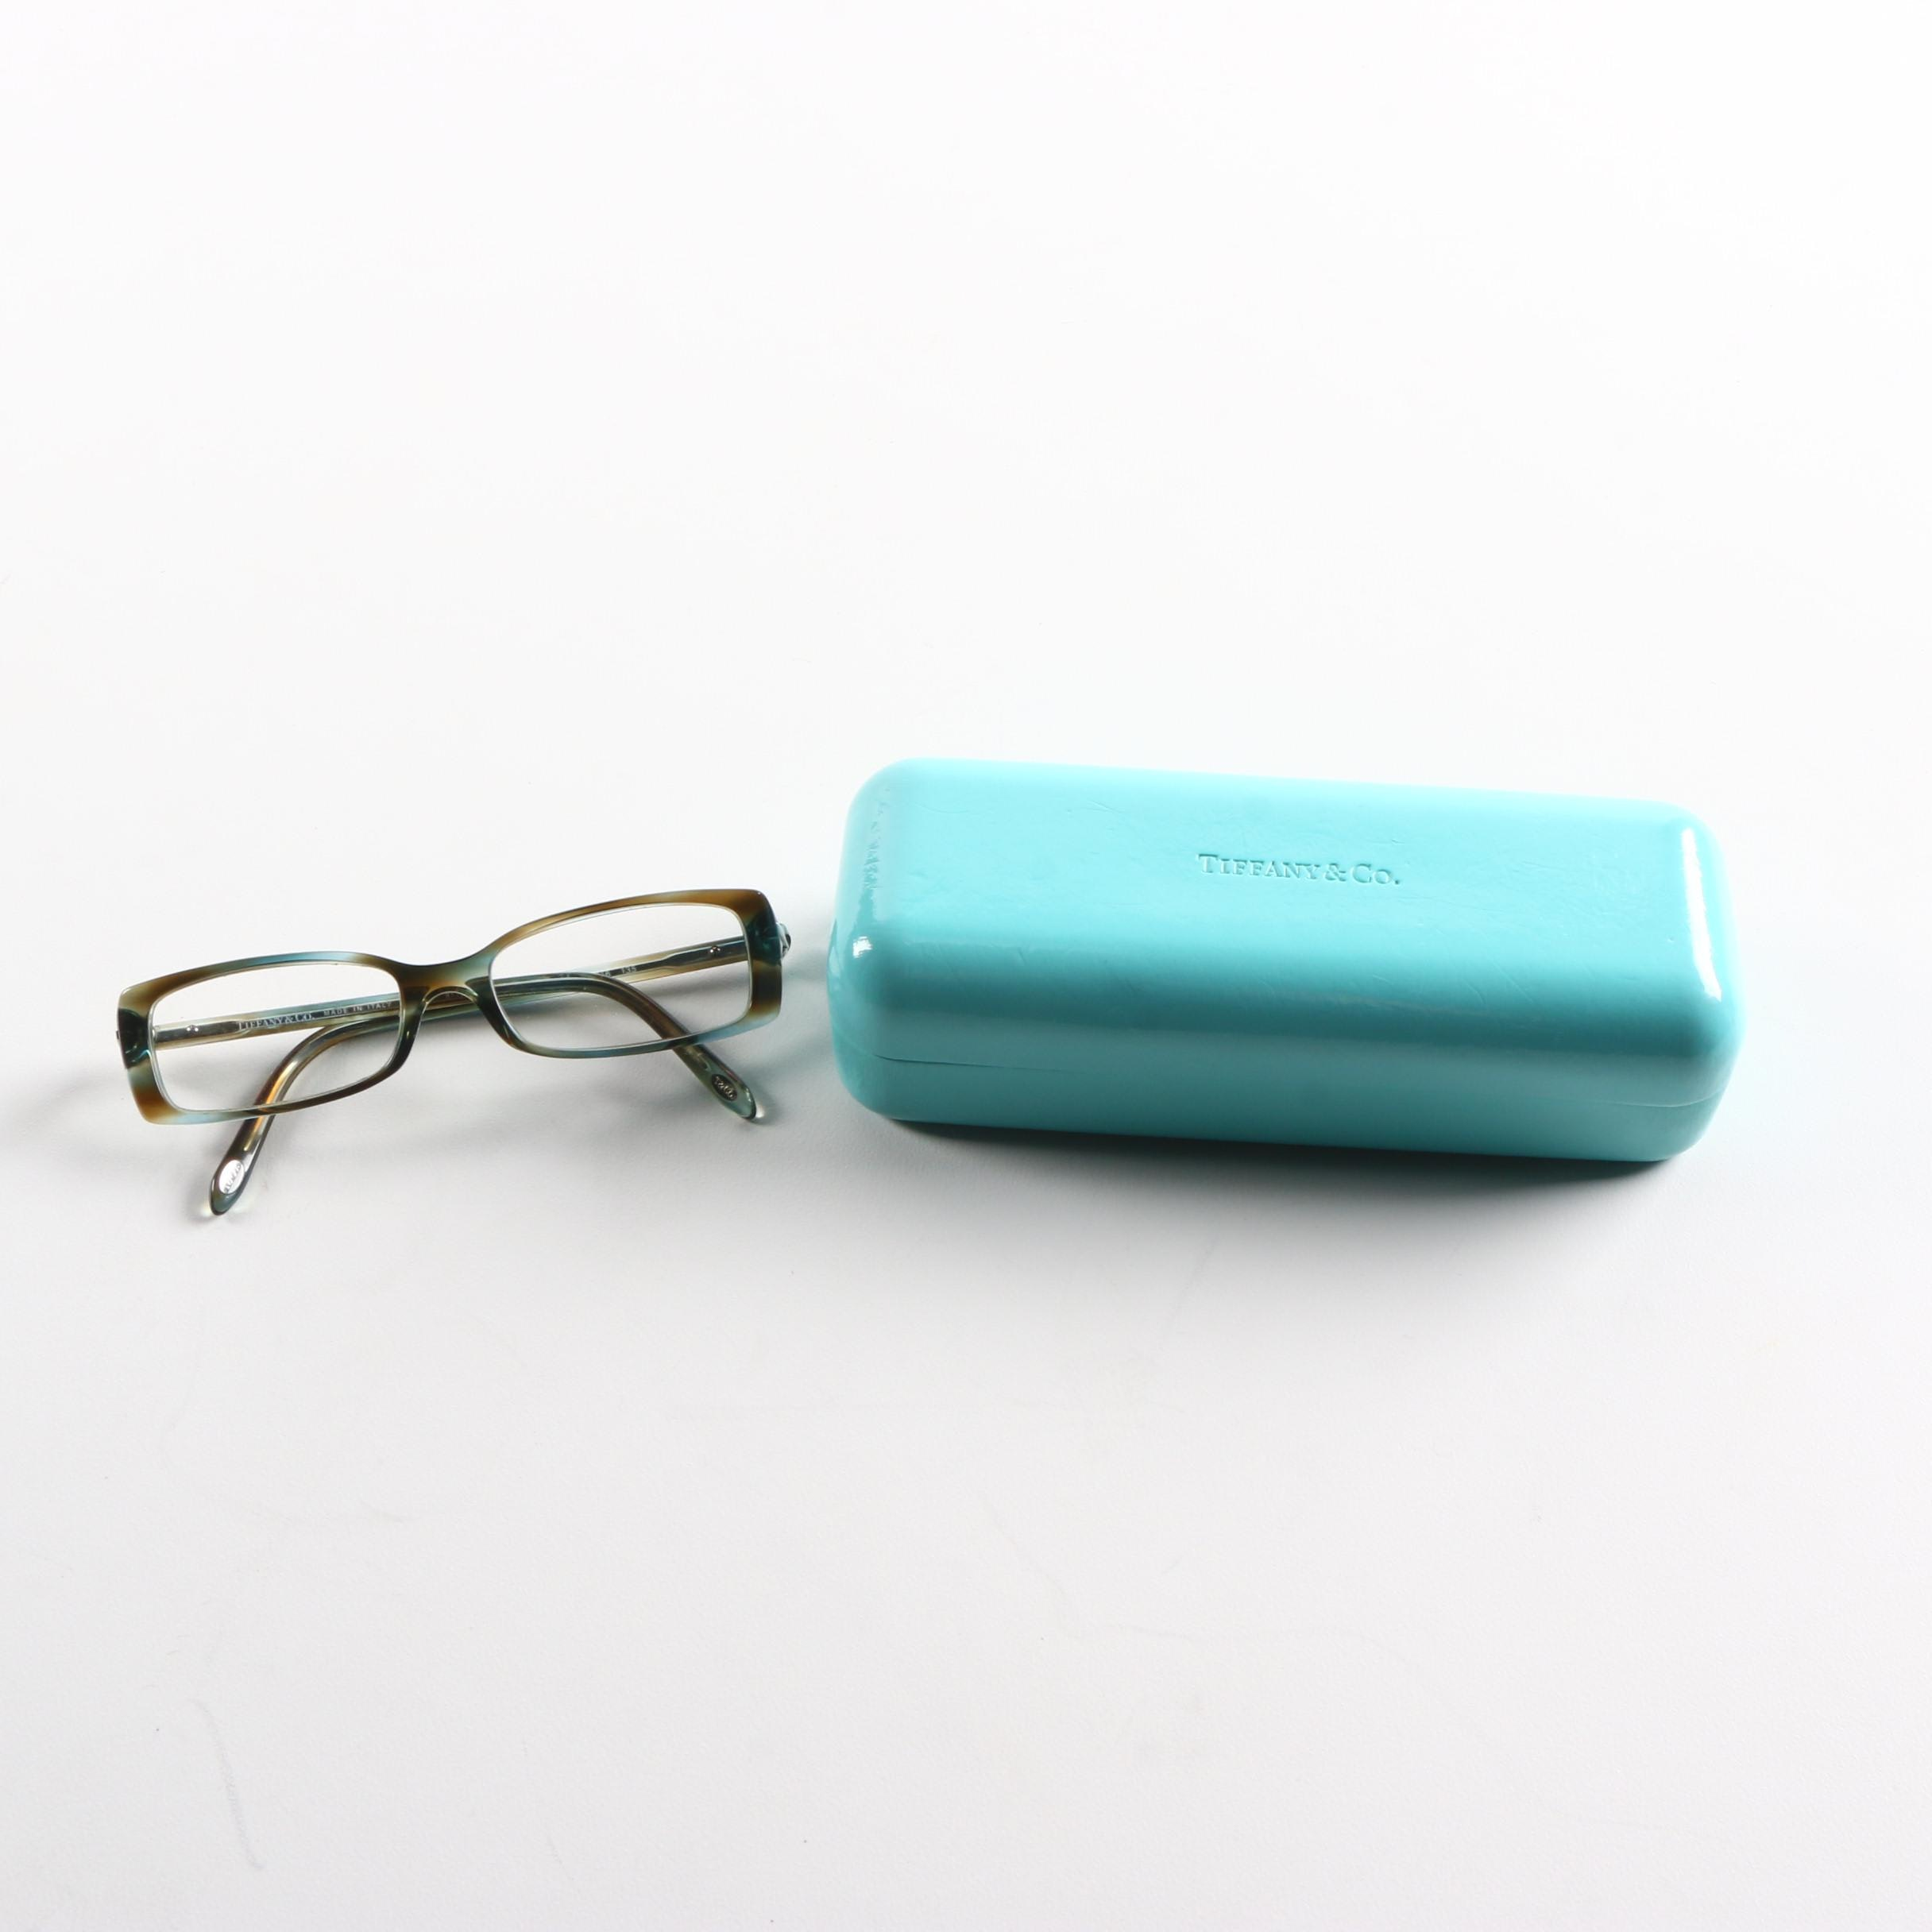 Women's Tiffany & Co. Eye Glasses with Case